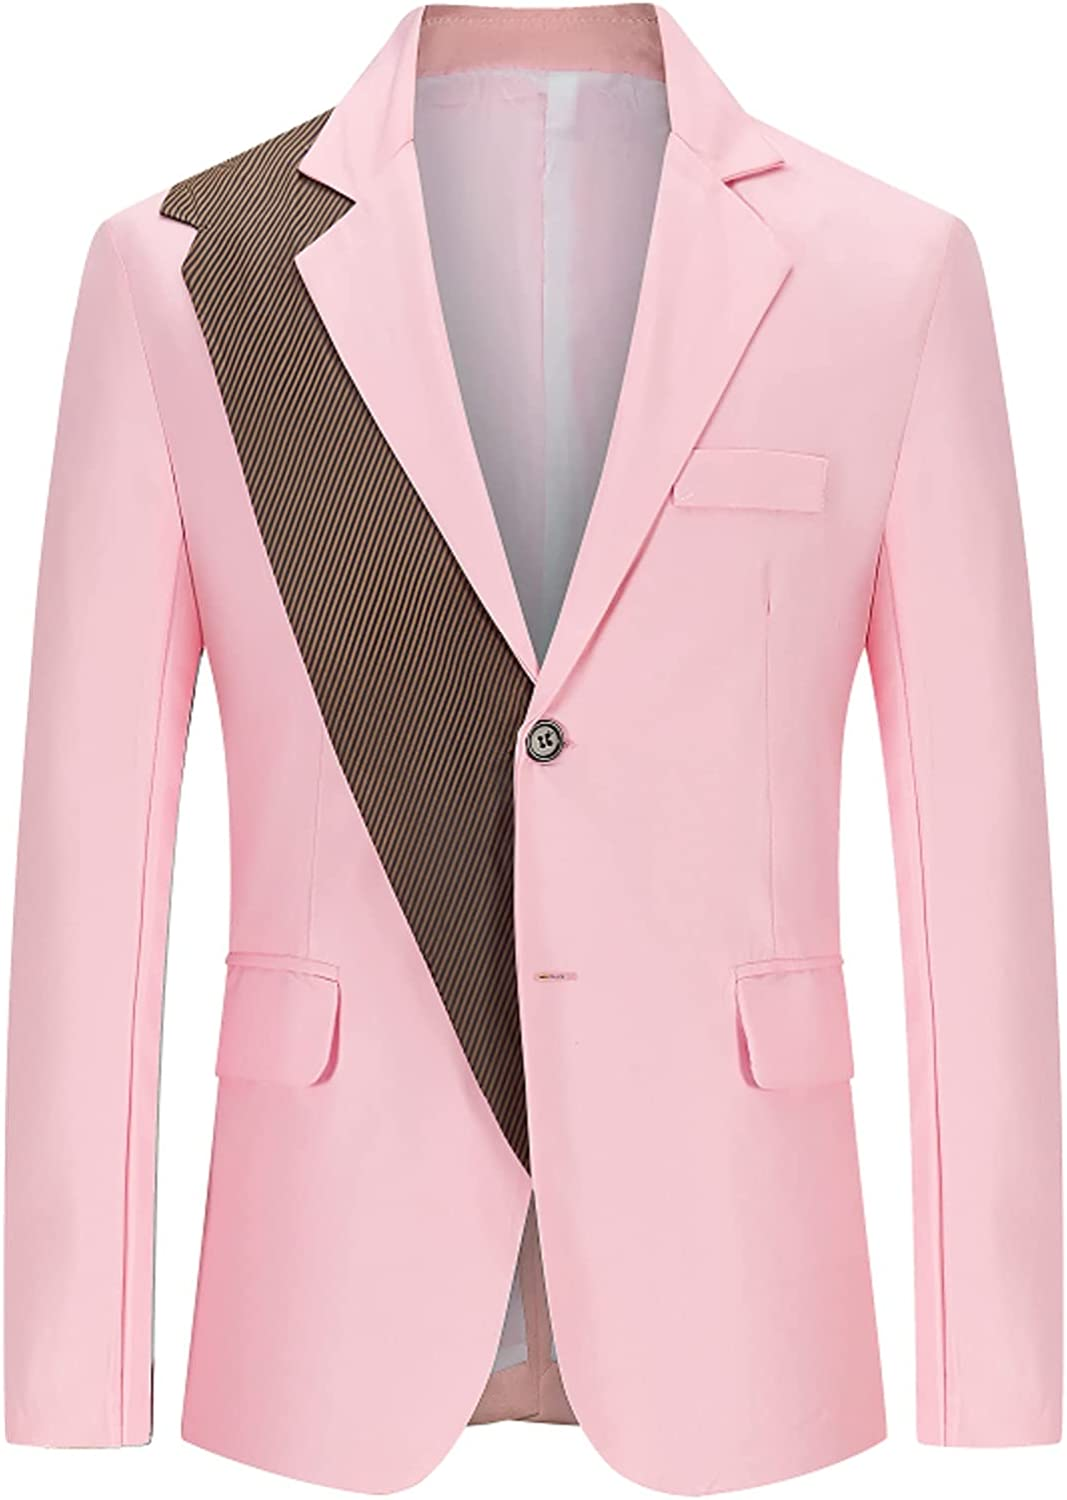 Premium Suit for Men's Fashion Business Blazer England Style Slim Splicing Single Breasted Youth Formal Coat Jacket